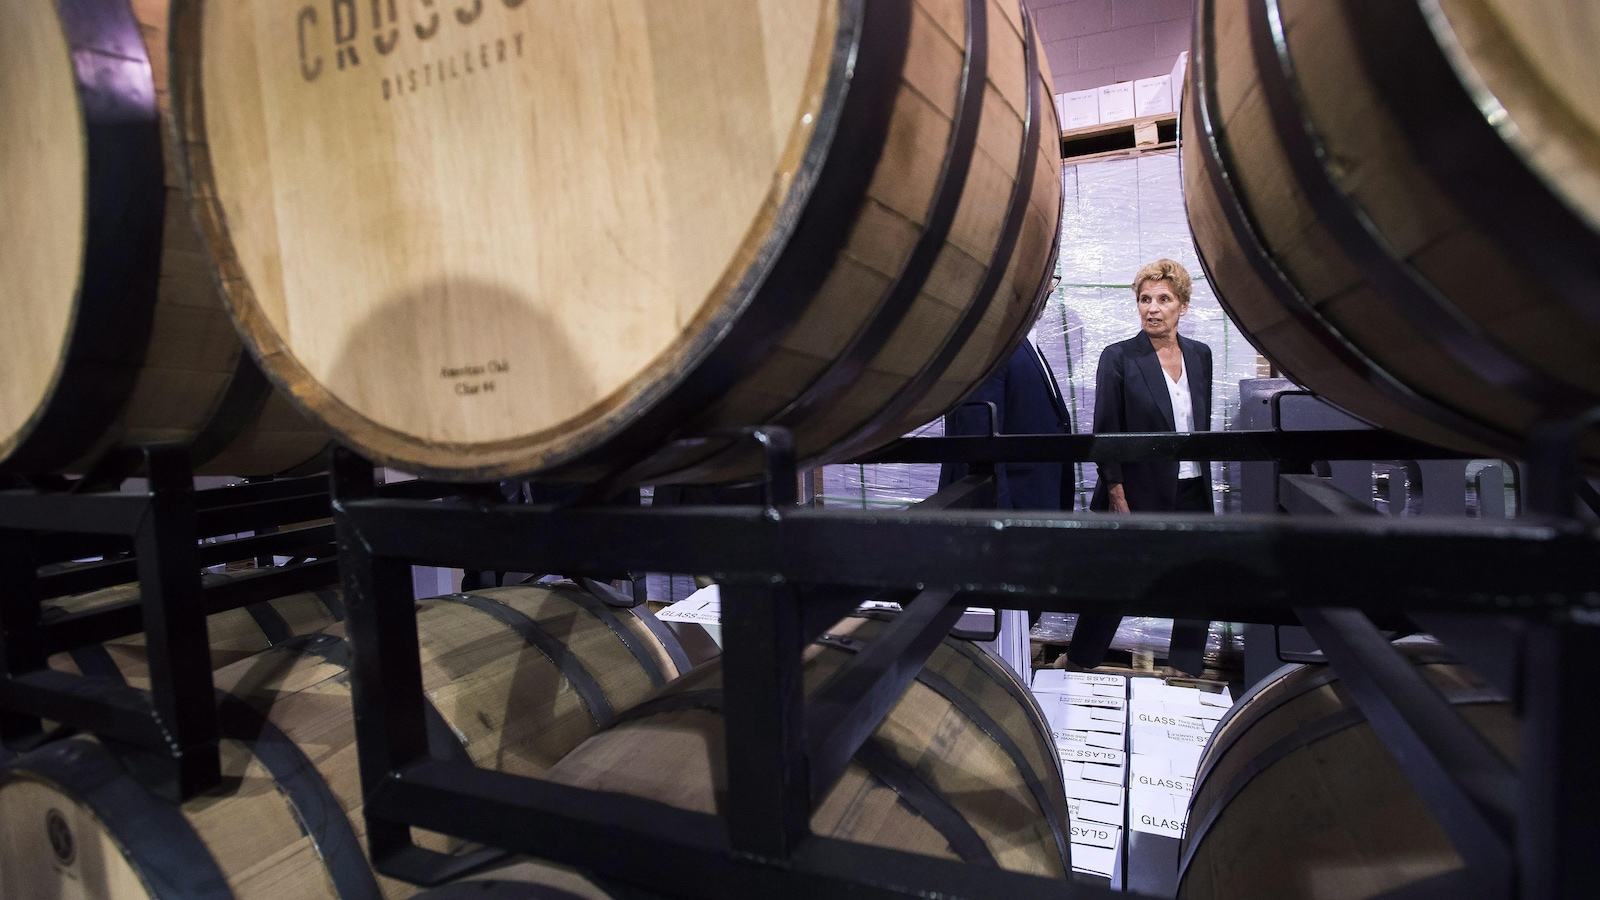 Ontario Liberal Leader Kathleen Wynne is framed between aging barrels before speaking at Crosscut Distillery during a campaign stop in Sudbury, Ont., on Wednesday, May 23, 2018. THE CANADIAN PRESS/Nathan Denette